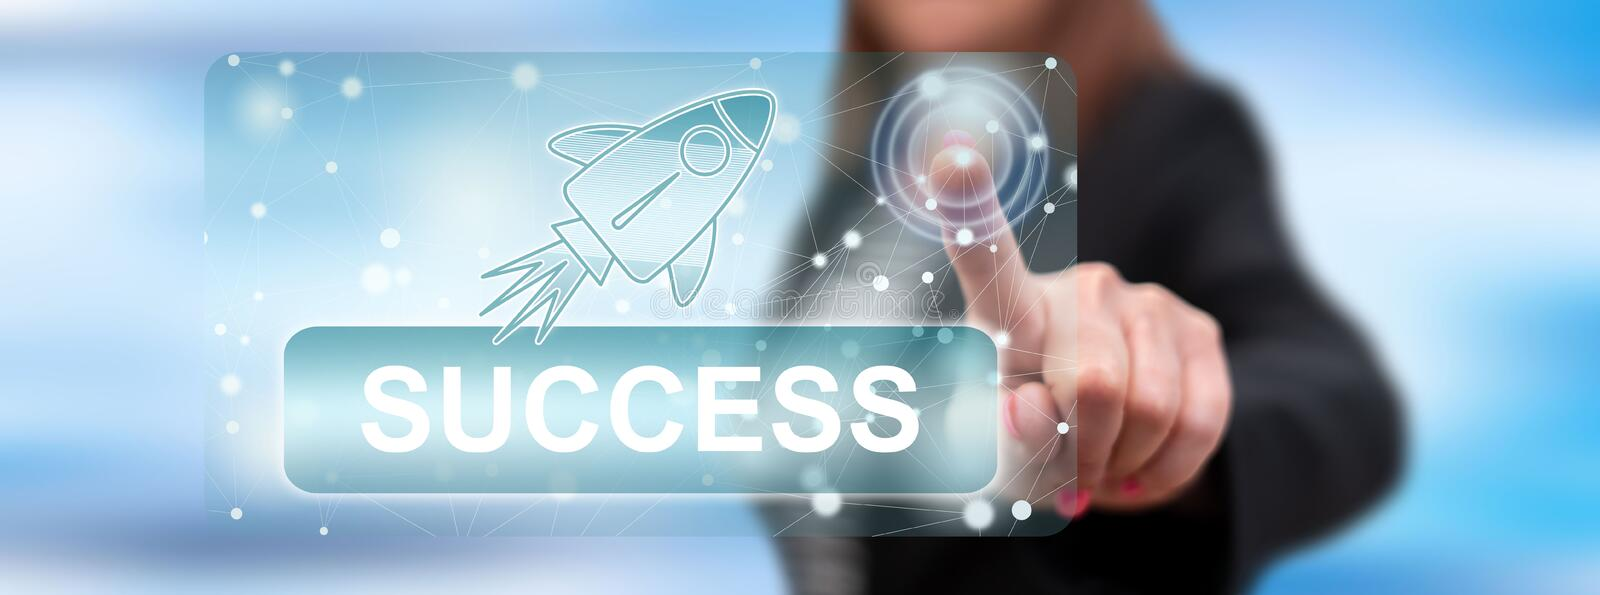 Woman touching a success concept royalty free stock image